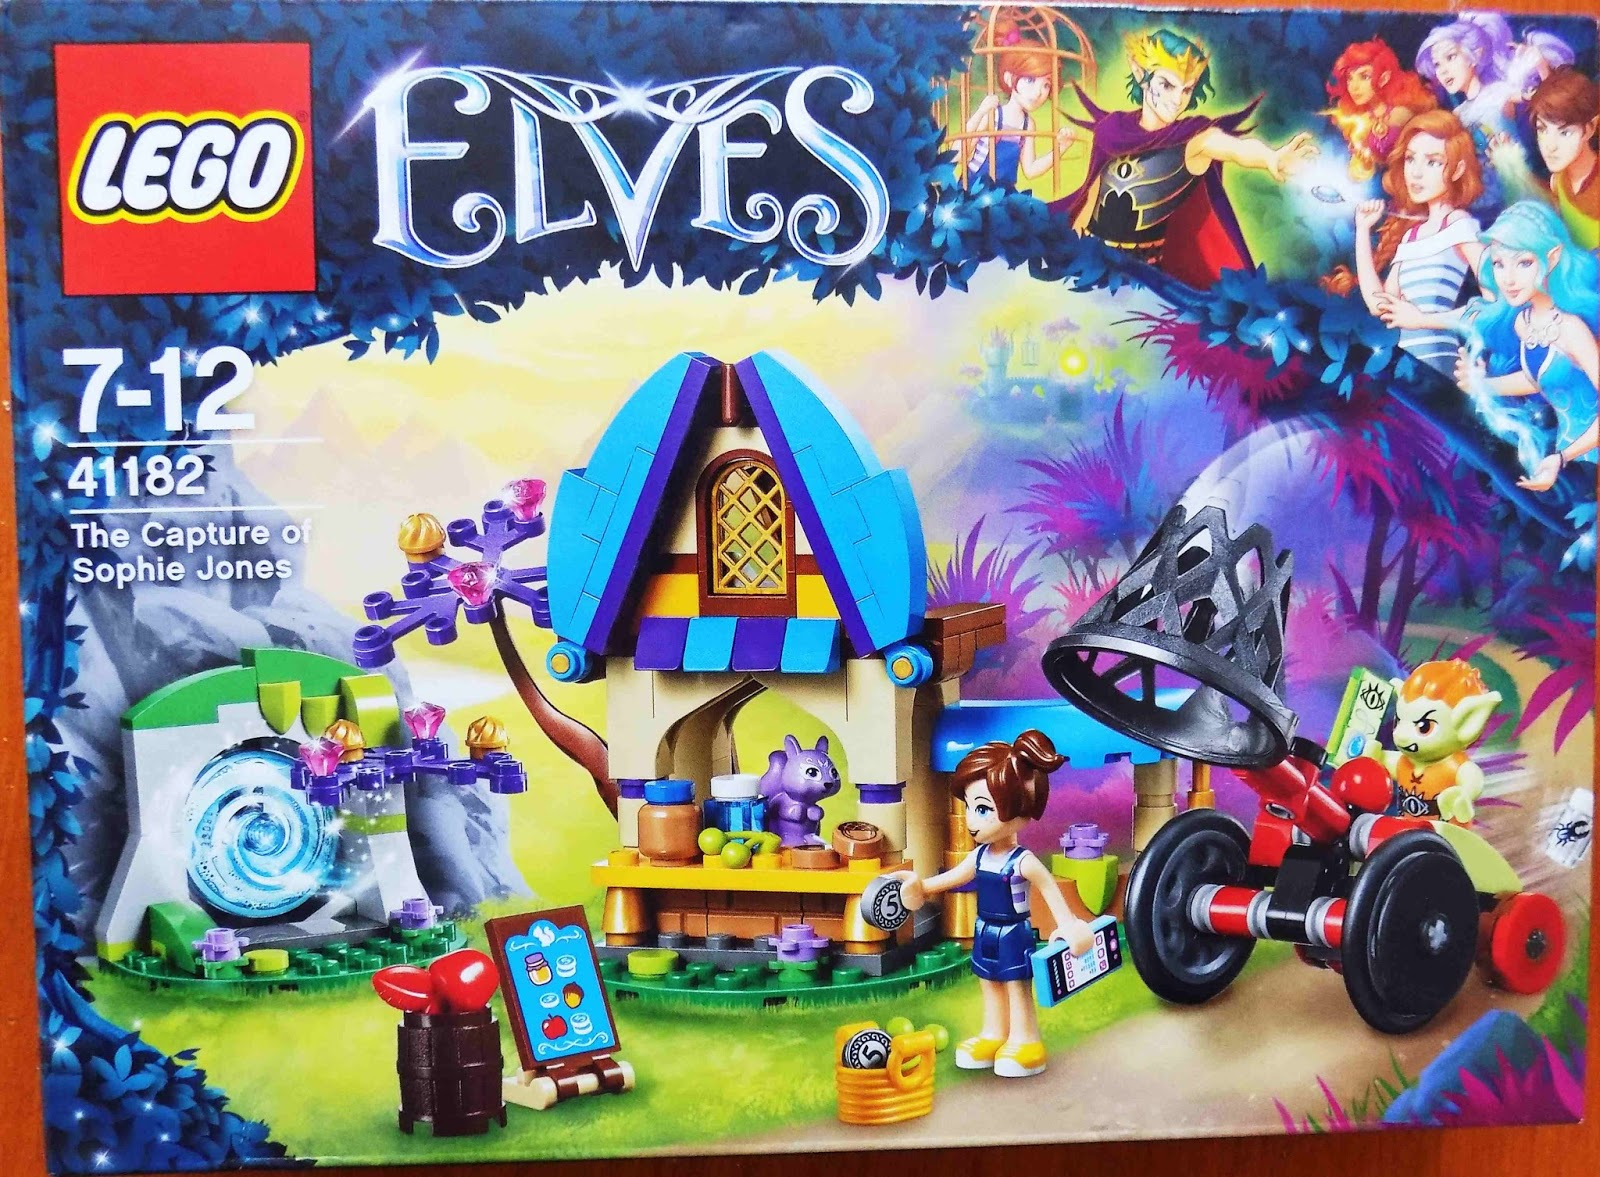 Madhouse Family Reviews: Lego Elves